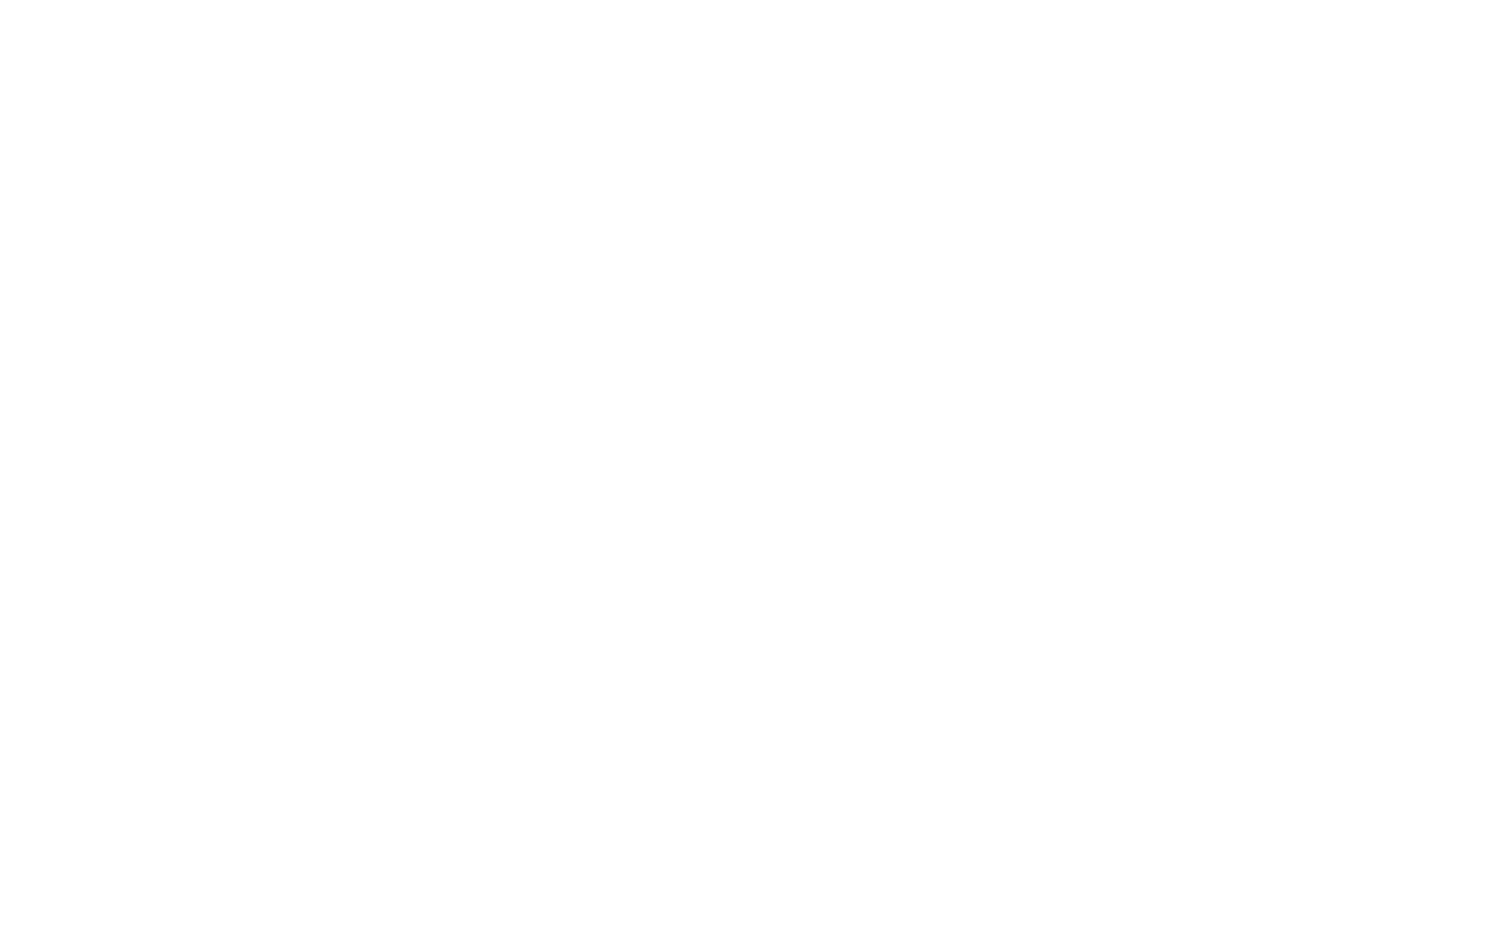 The Broadway Dance Collective